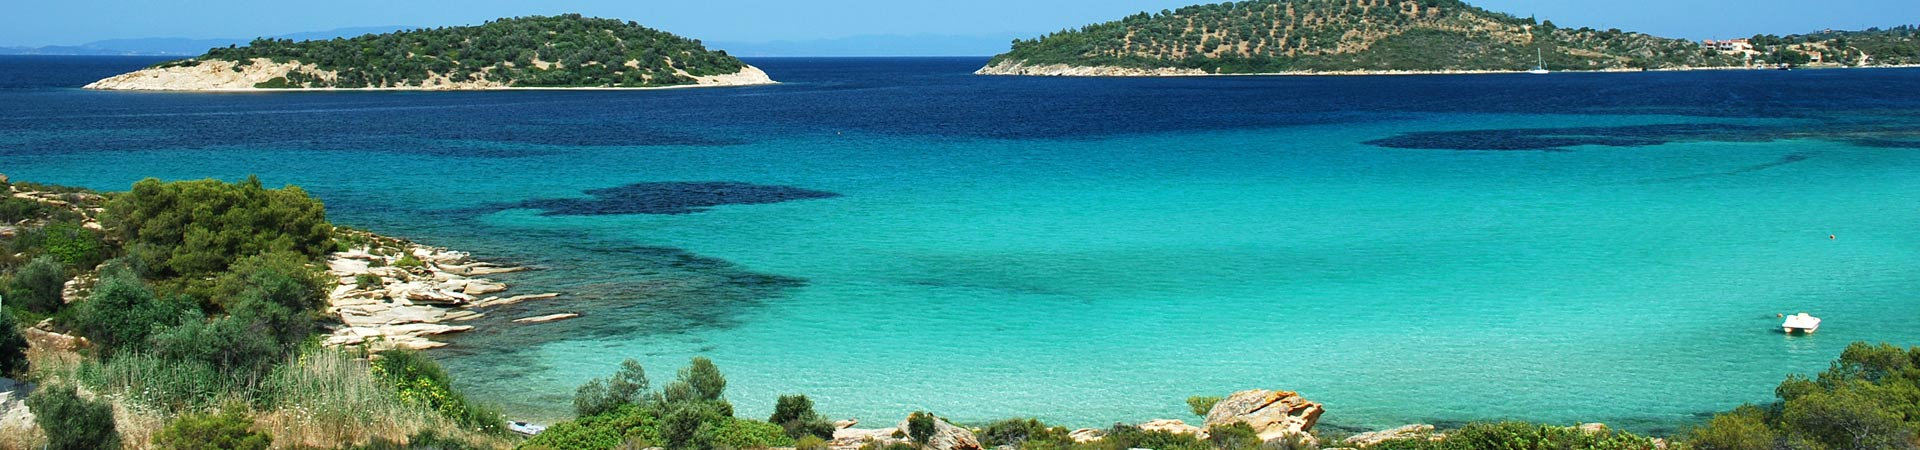 Sithonia, Yacht  Charter Greece